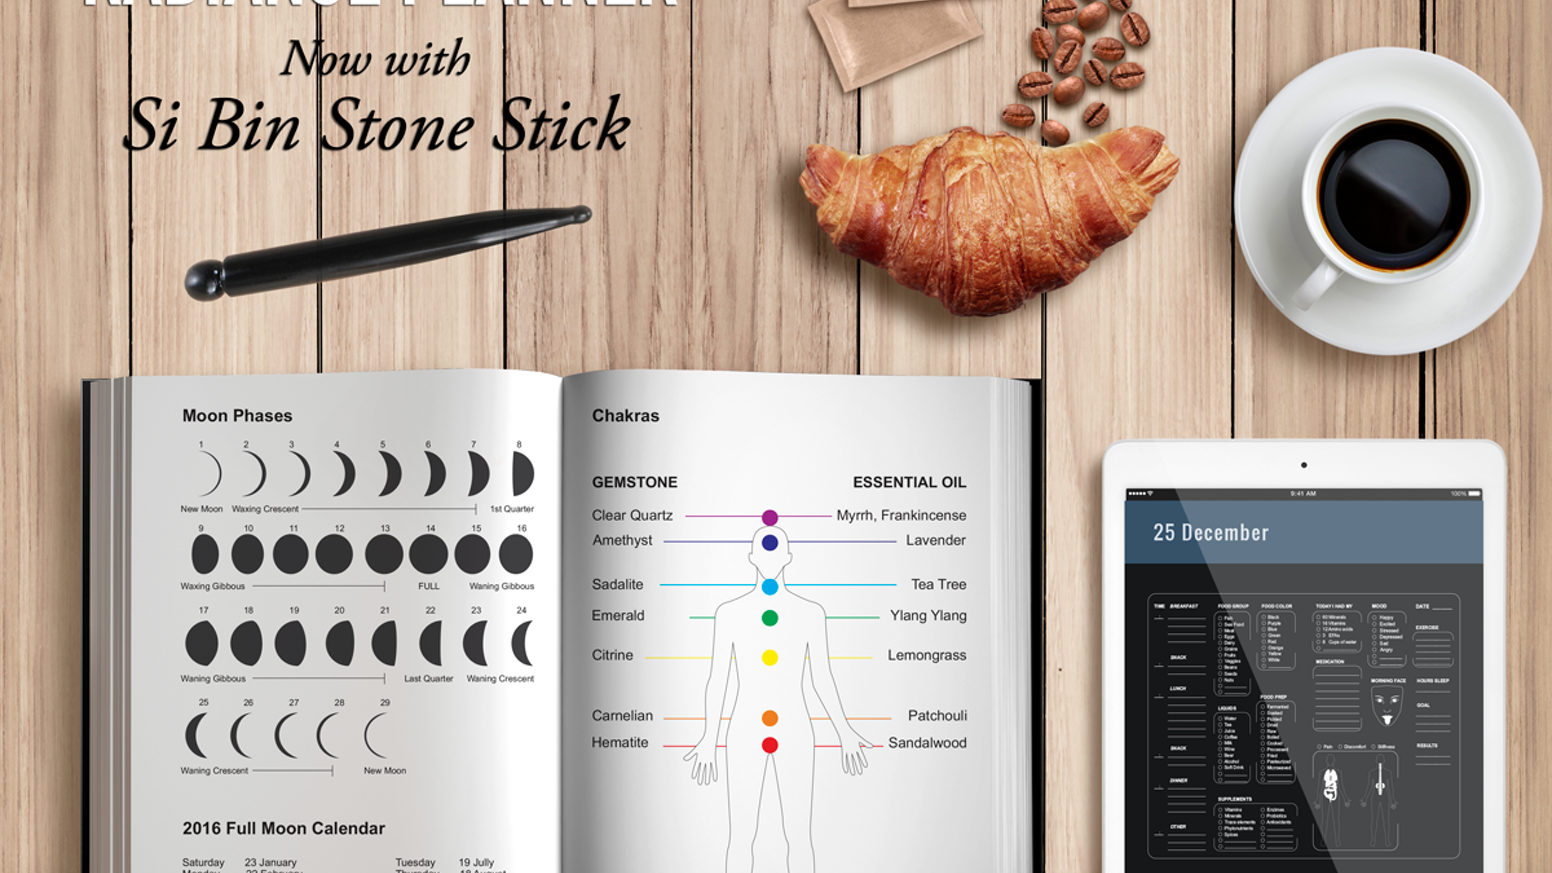 The Most Comprehensive Nutrition and Health Diary with Real Si Bin/Bian AcupressureStoneStick